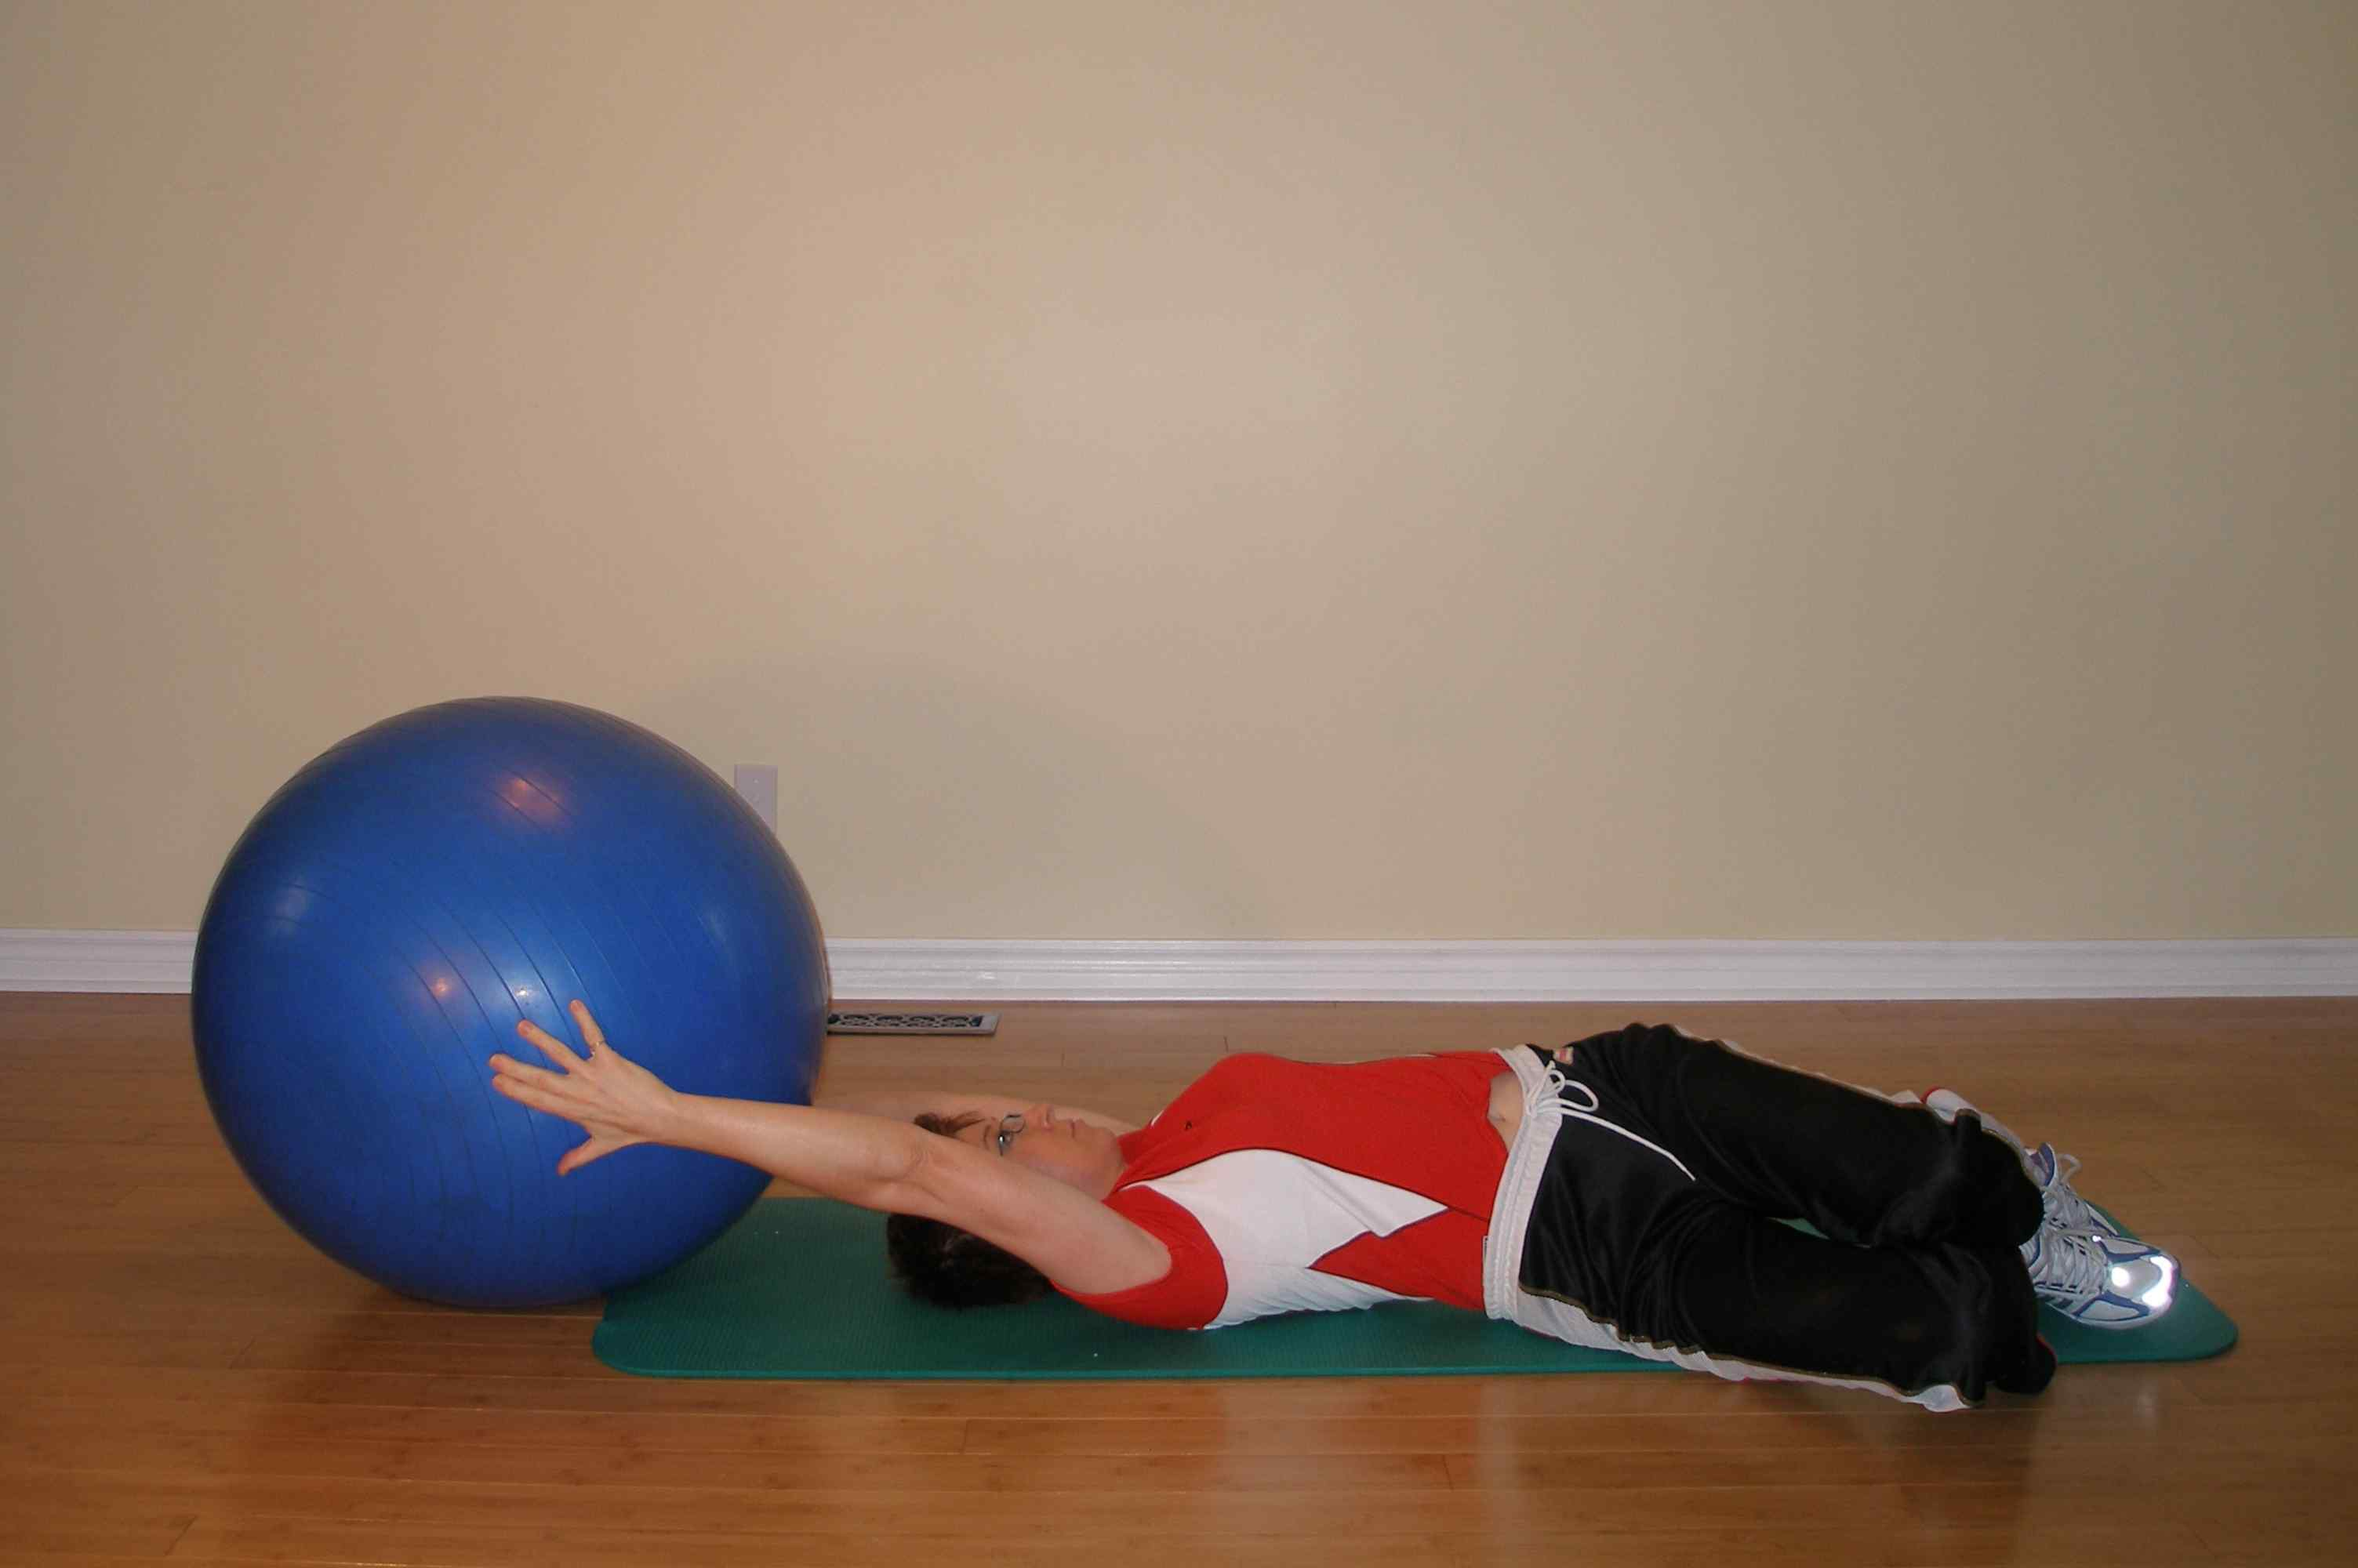 supine trunk rotation using the exercise ball